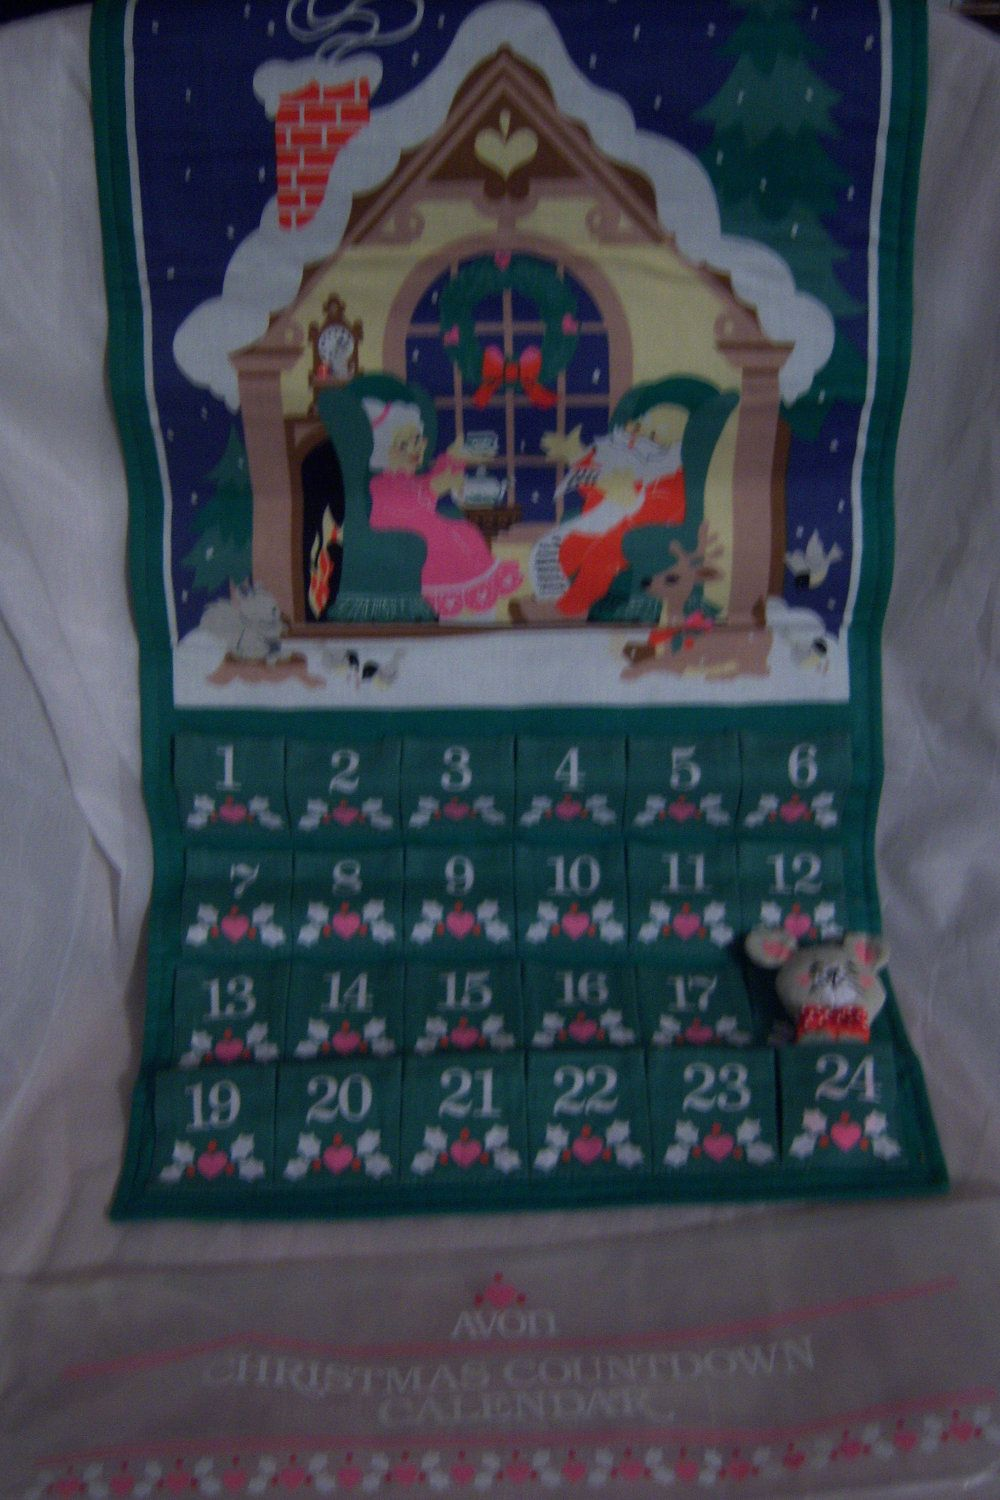 1987 avon christmas countdown calendar google search i have had this calendarsince the 80s one of my first purchases from avonmy girls argue over